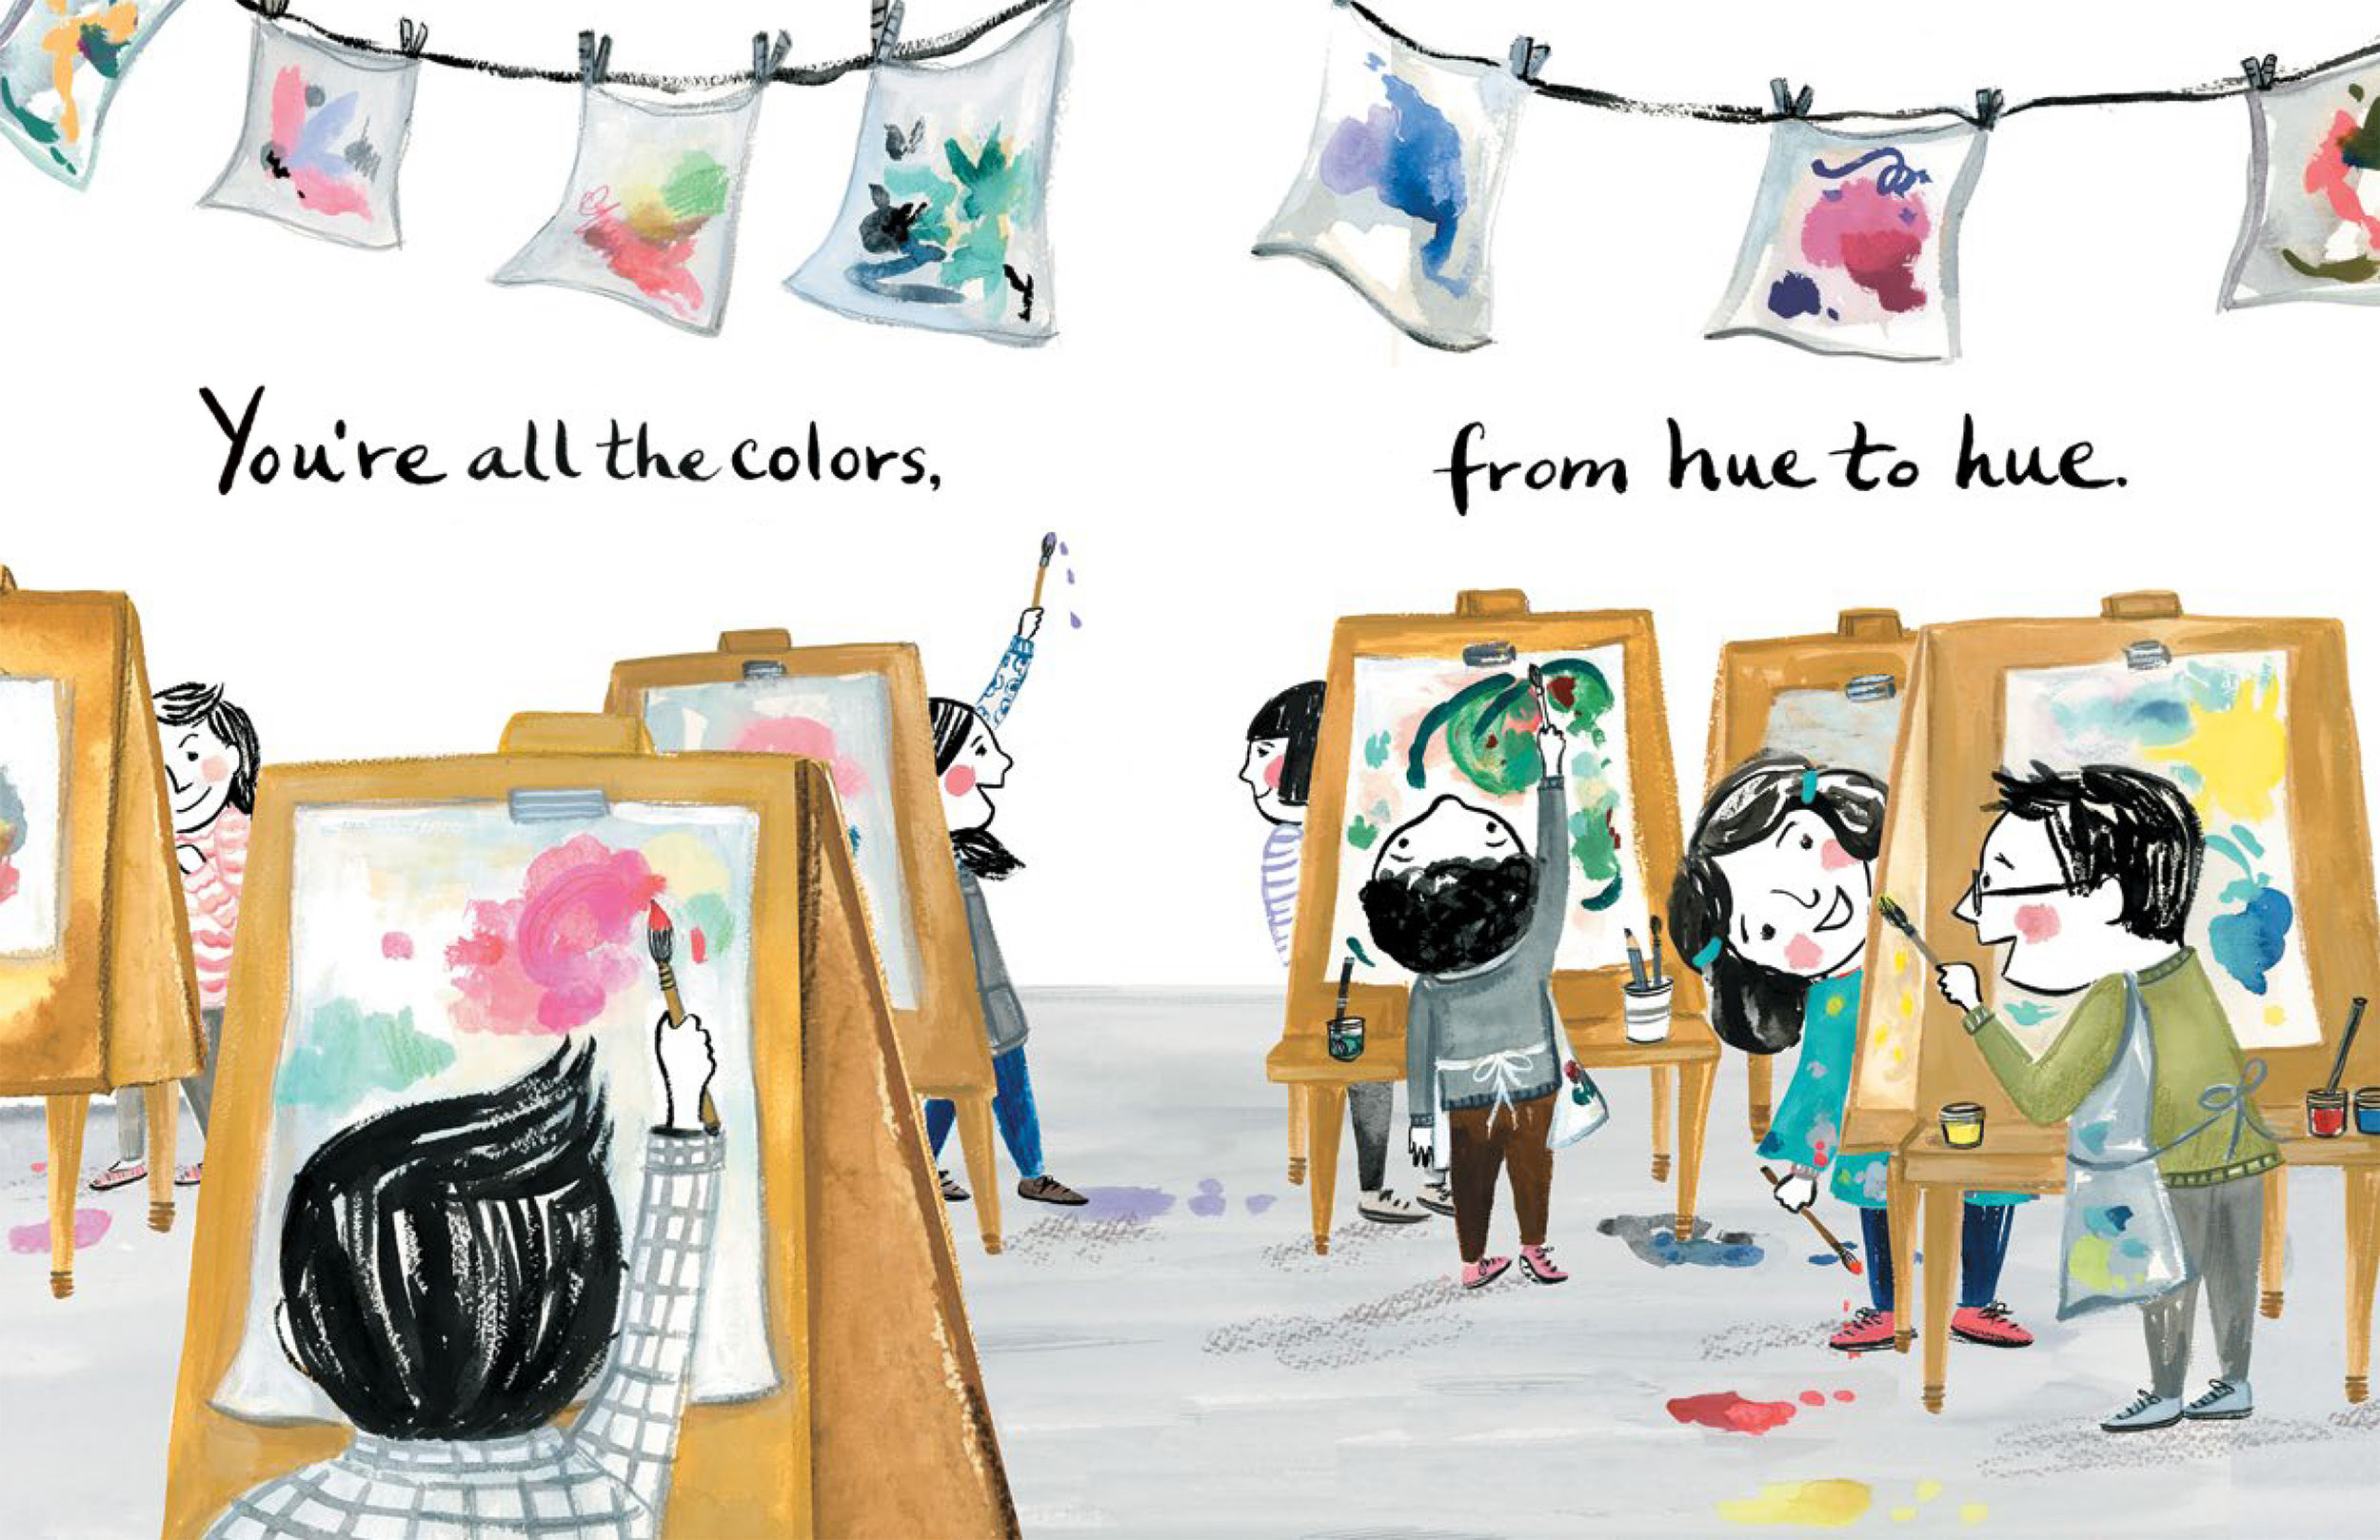 Selected spreads from I Feel Teal (published by Simon and Schuster Summer 2018)